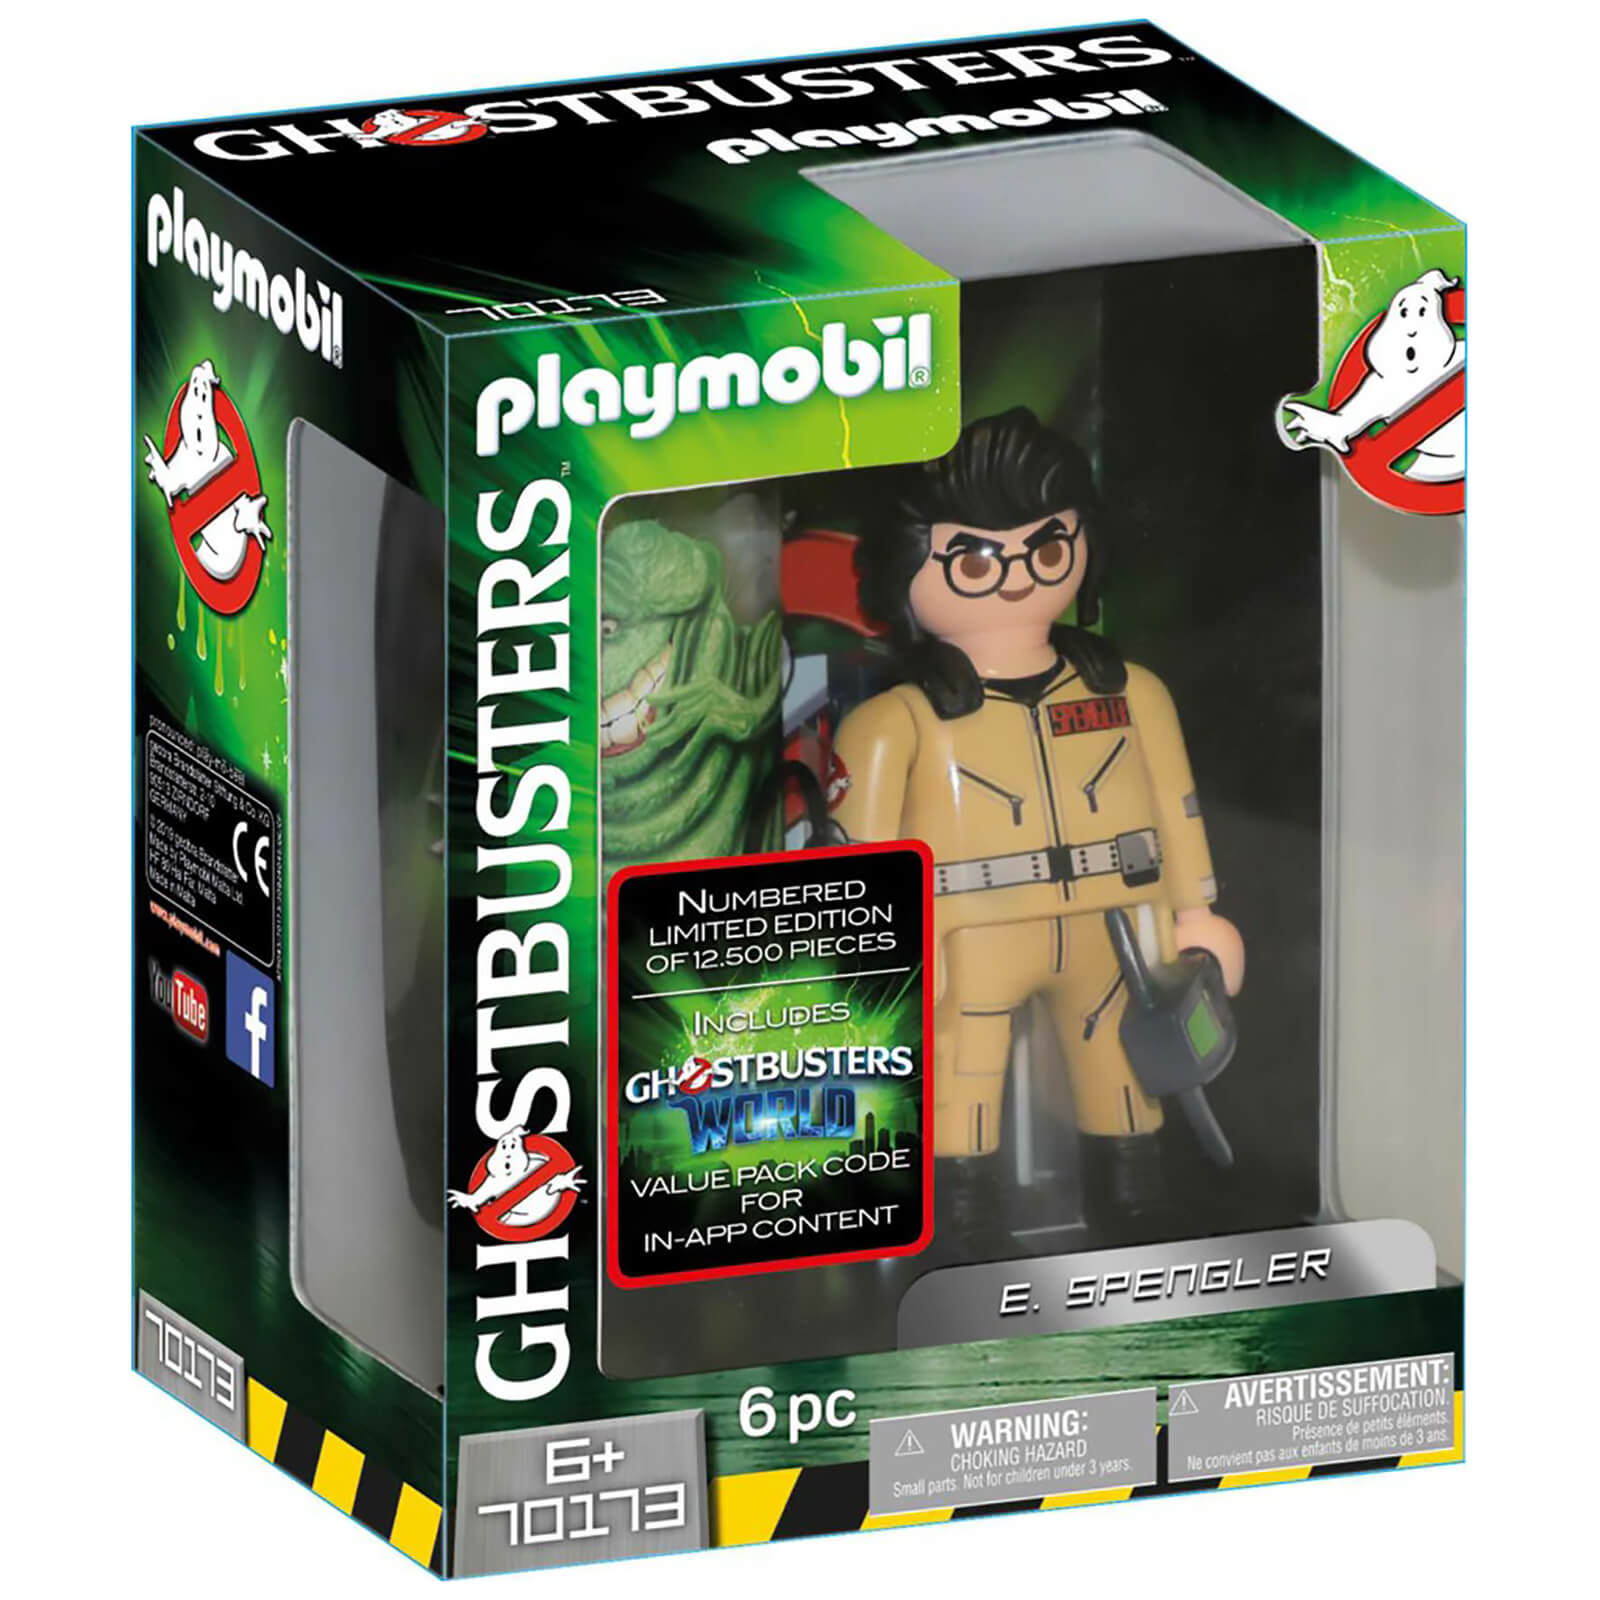 Playmobil Ghostbusters Collectors Edition E. Spengler - Limited and individually numbered (70173)